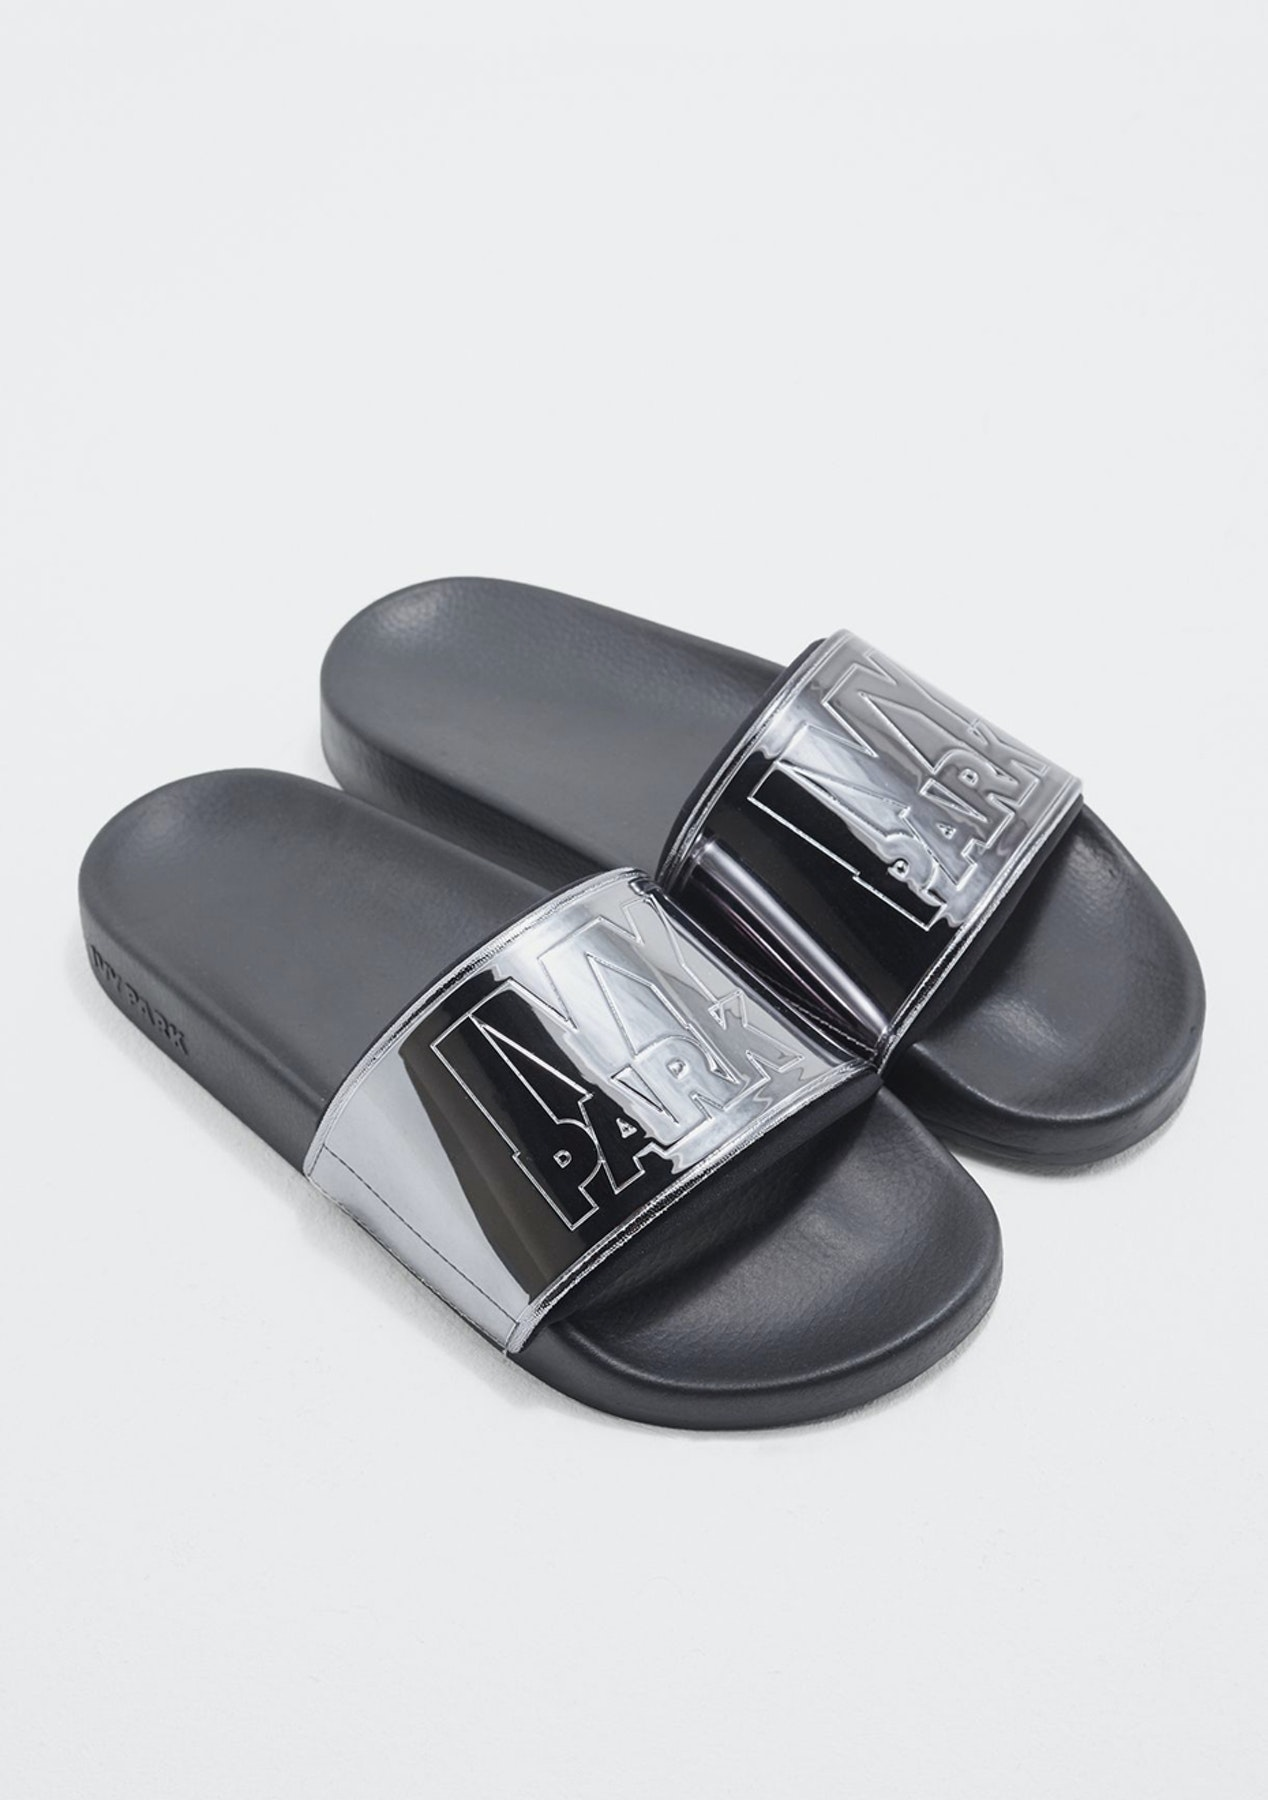 295b73d861d080 Ivy Park - Metallic Neo Slider - Gunmetal - Big brand Flash Sale 48 hour  Price Drop - Onceit